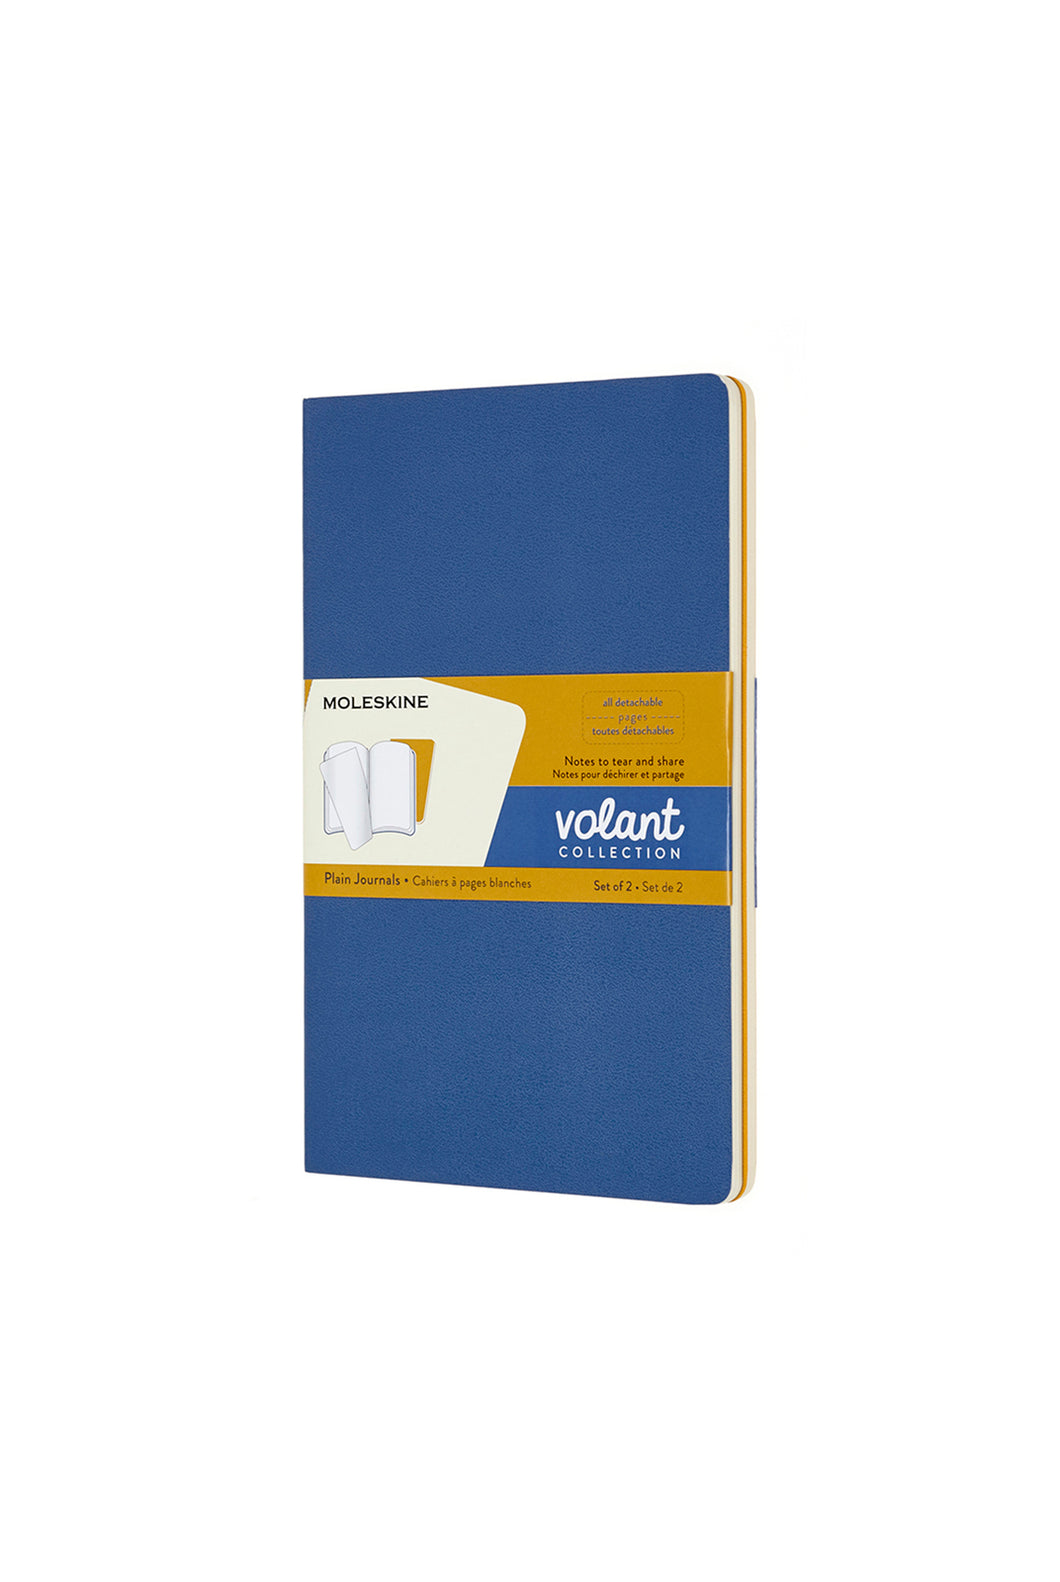 Moleskine - Volant Notebook - Plain - Large (13x21cm) - Forget Me Not Blue & Amber Yellow